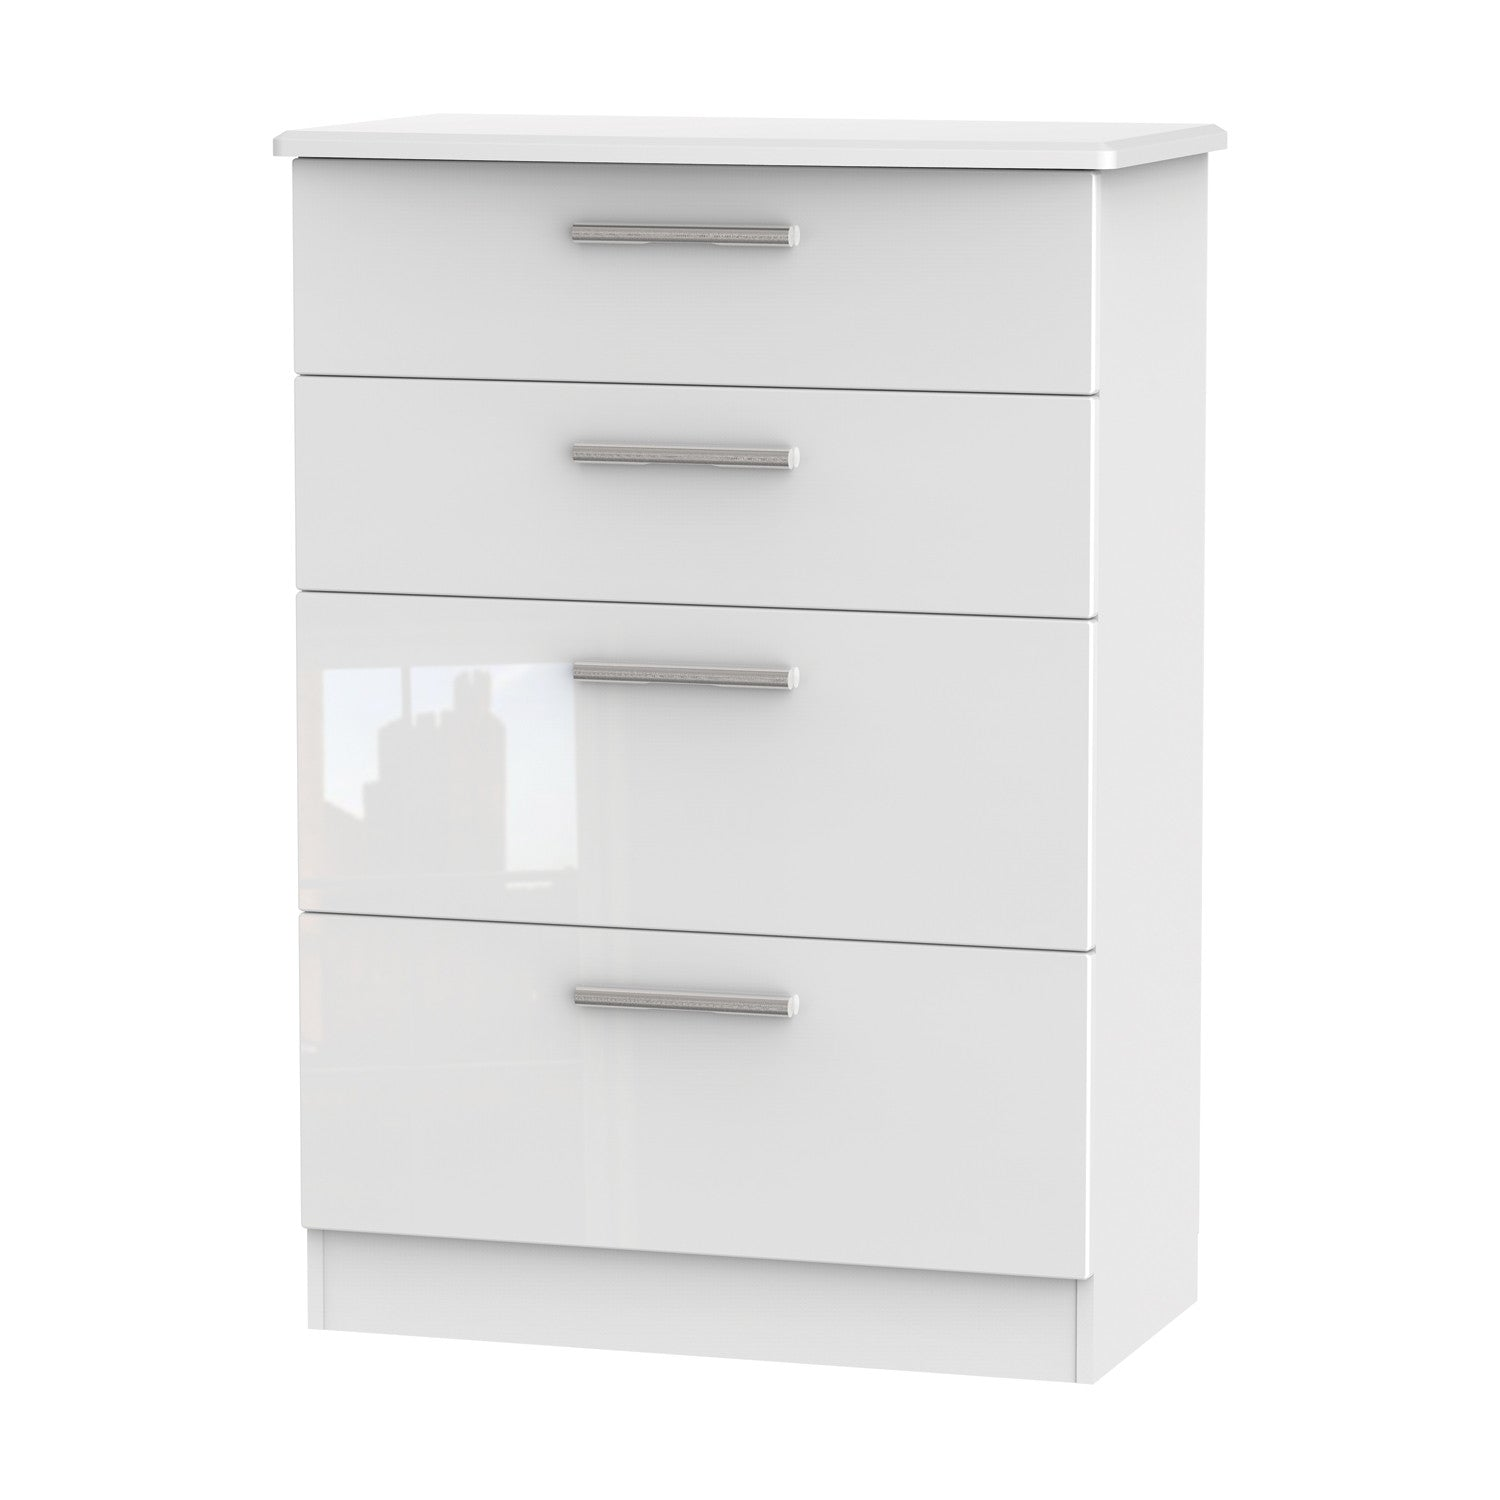 Kensington Chest of Drawers - 4 Drawer Deep